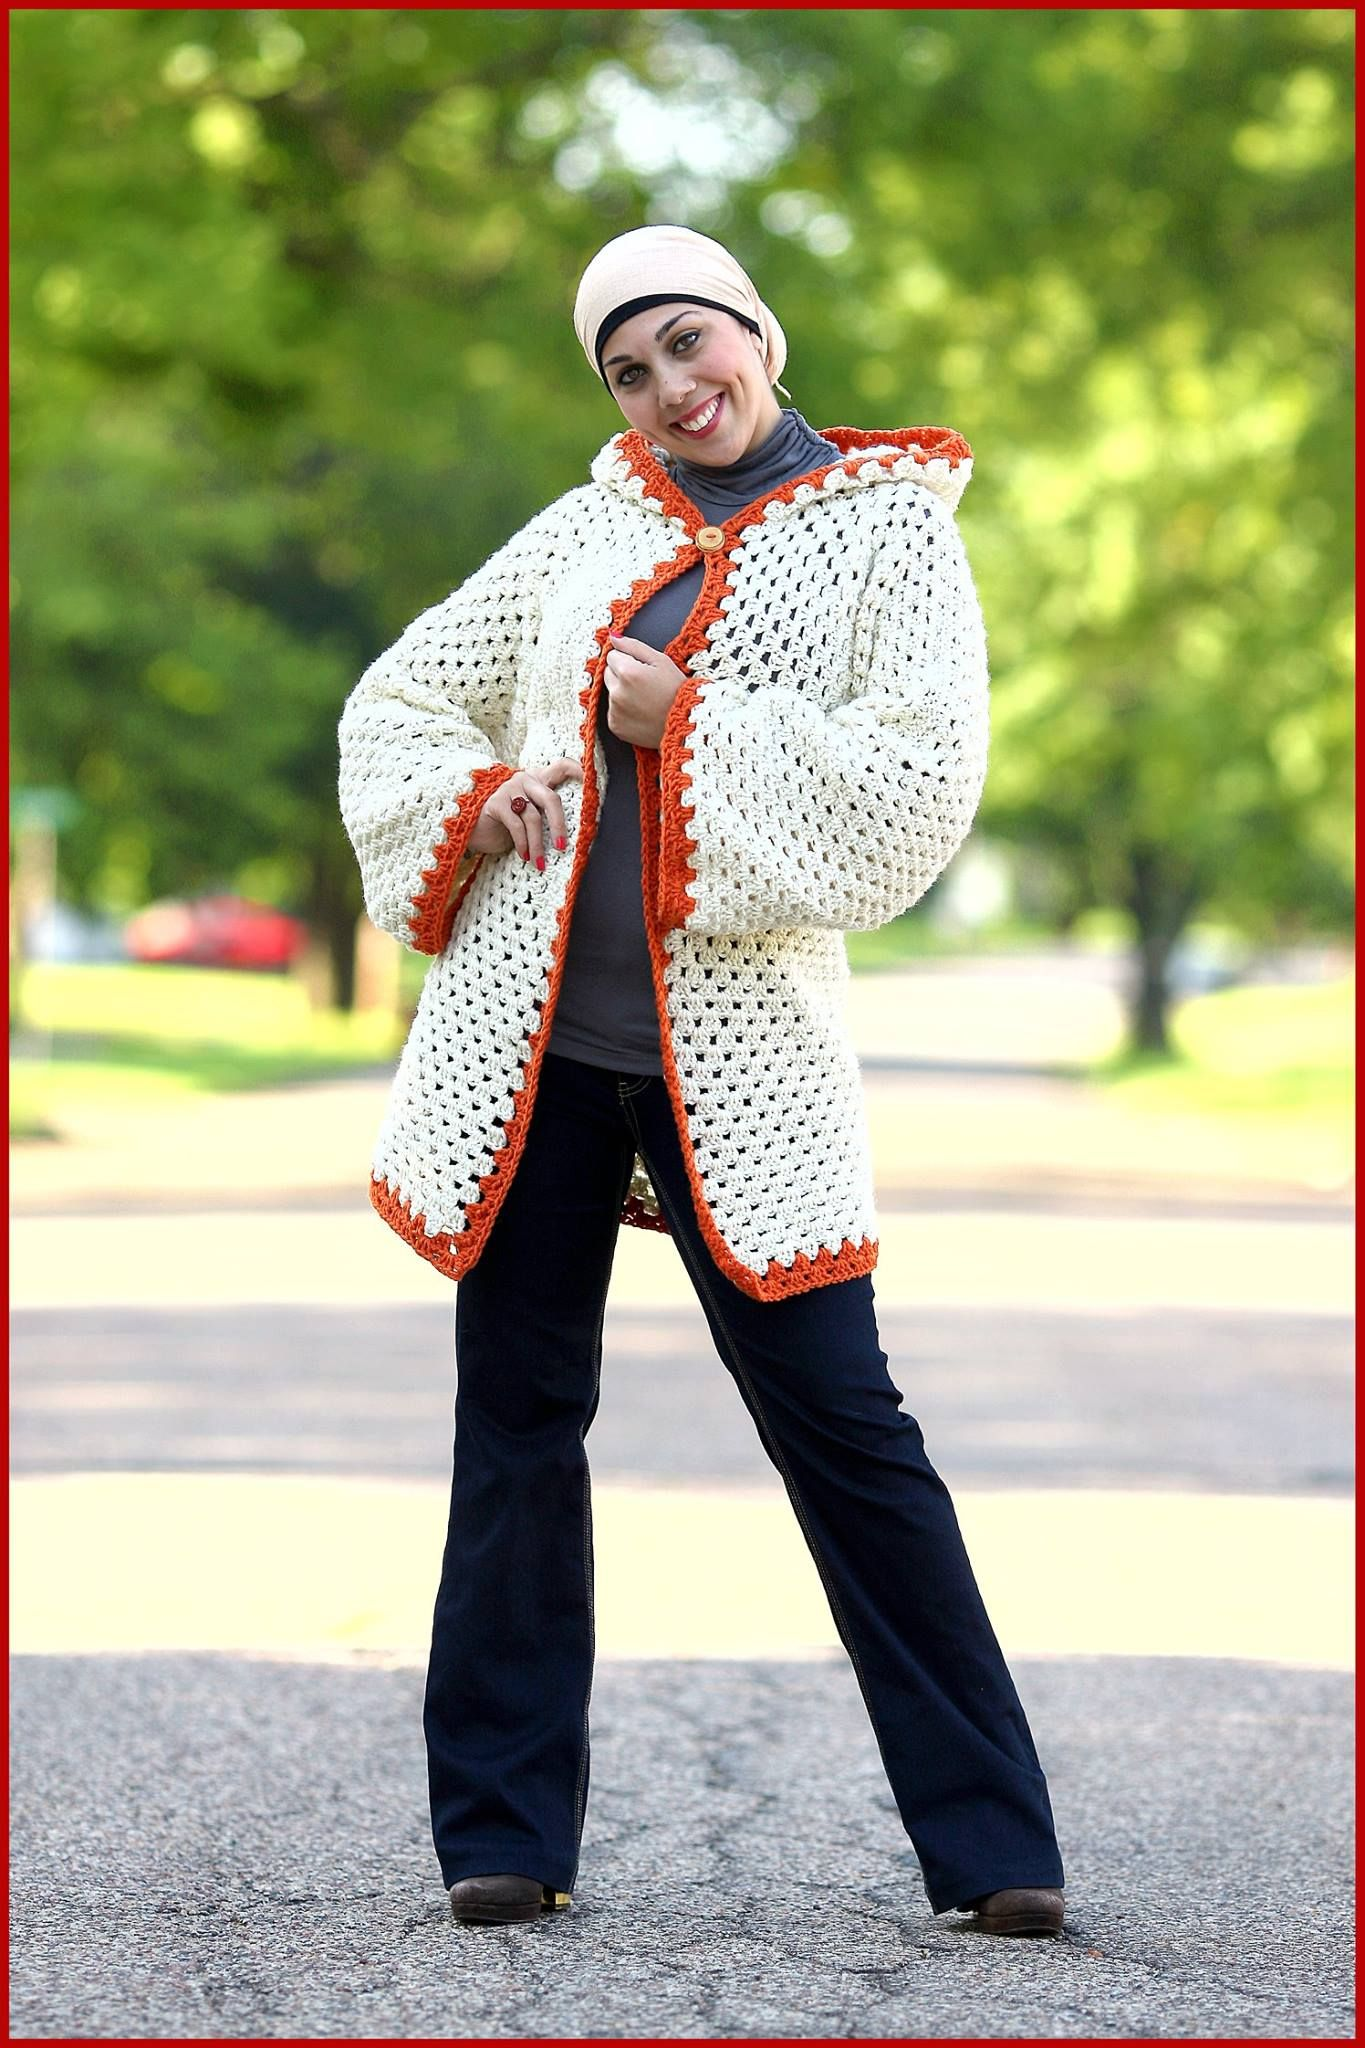 Hexagonal Cardigan | adult clothing | Pinterest | Crochet and Patterns